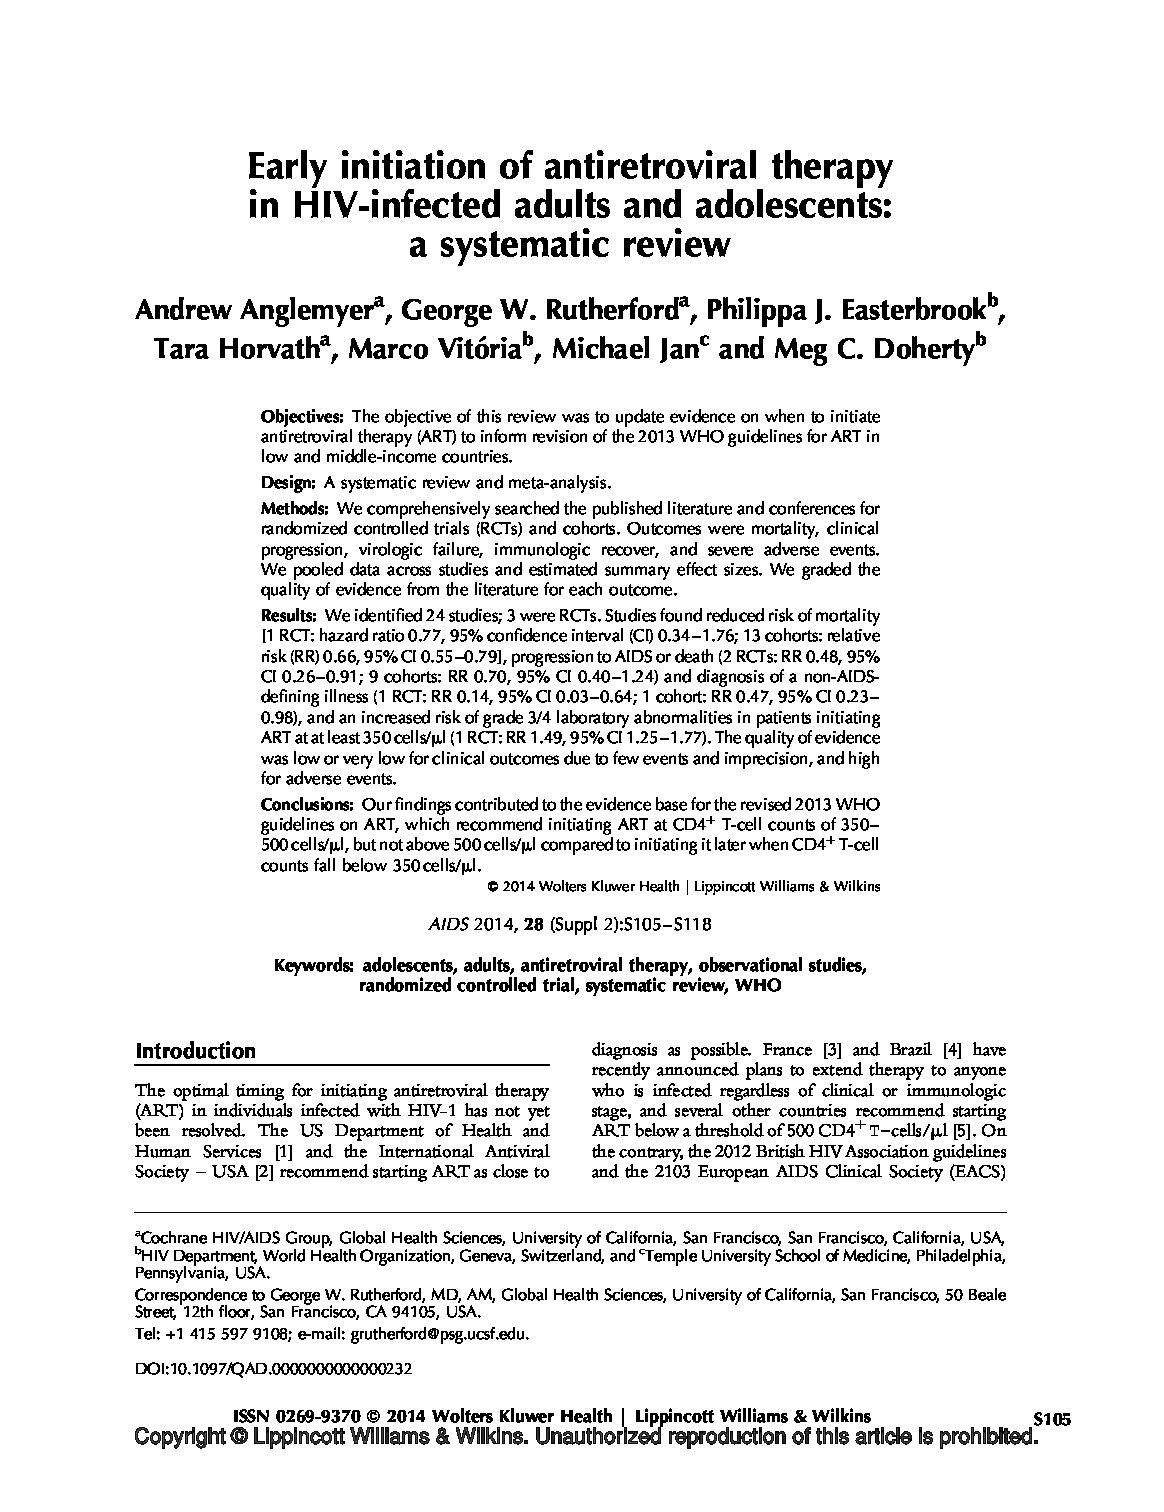 Early initiation of antiretroviral therapy in HIV-infected adults and adolescents a systematic review.